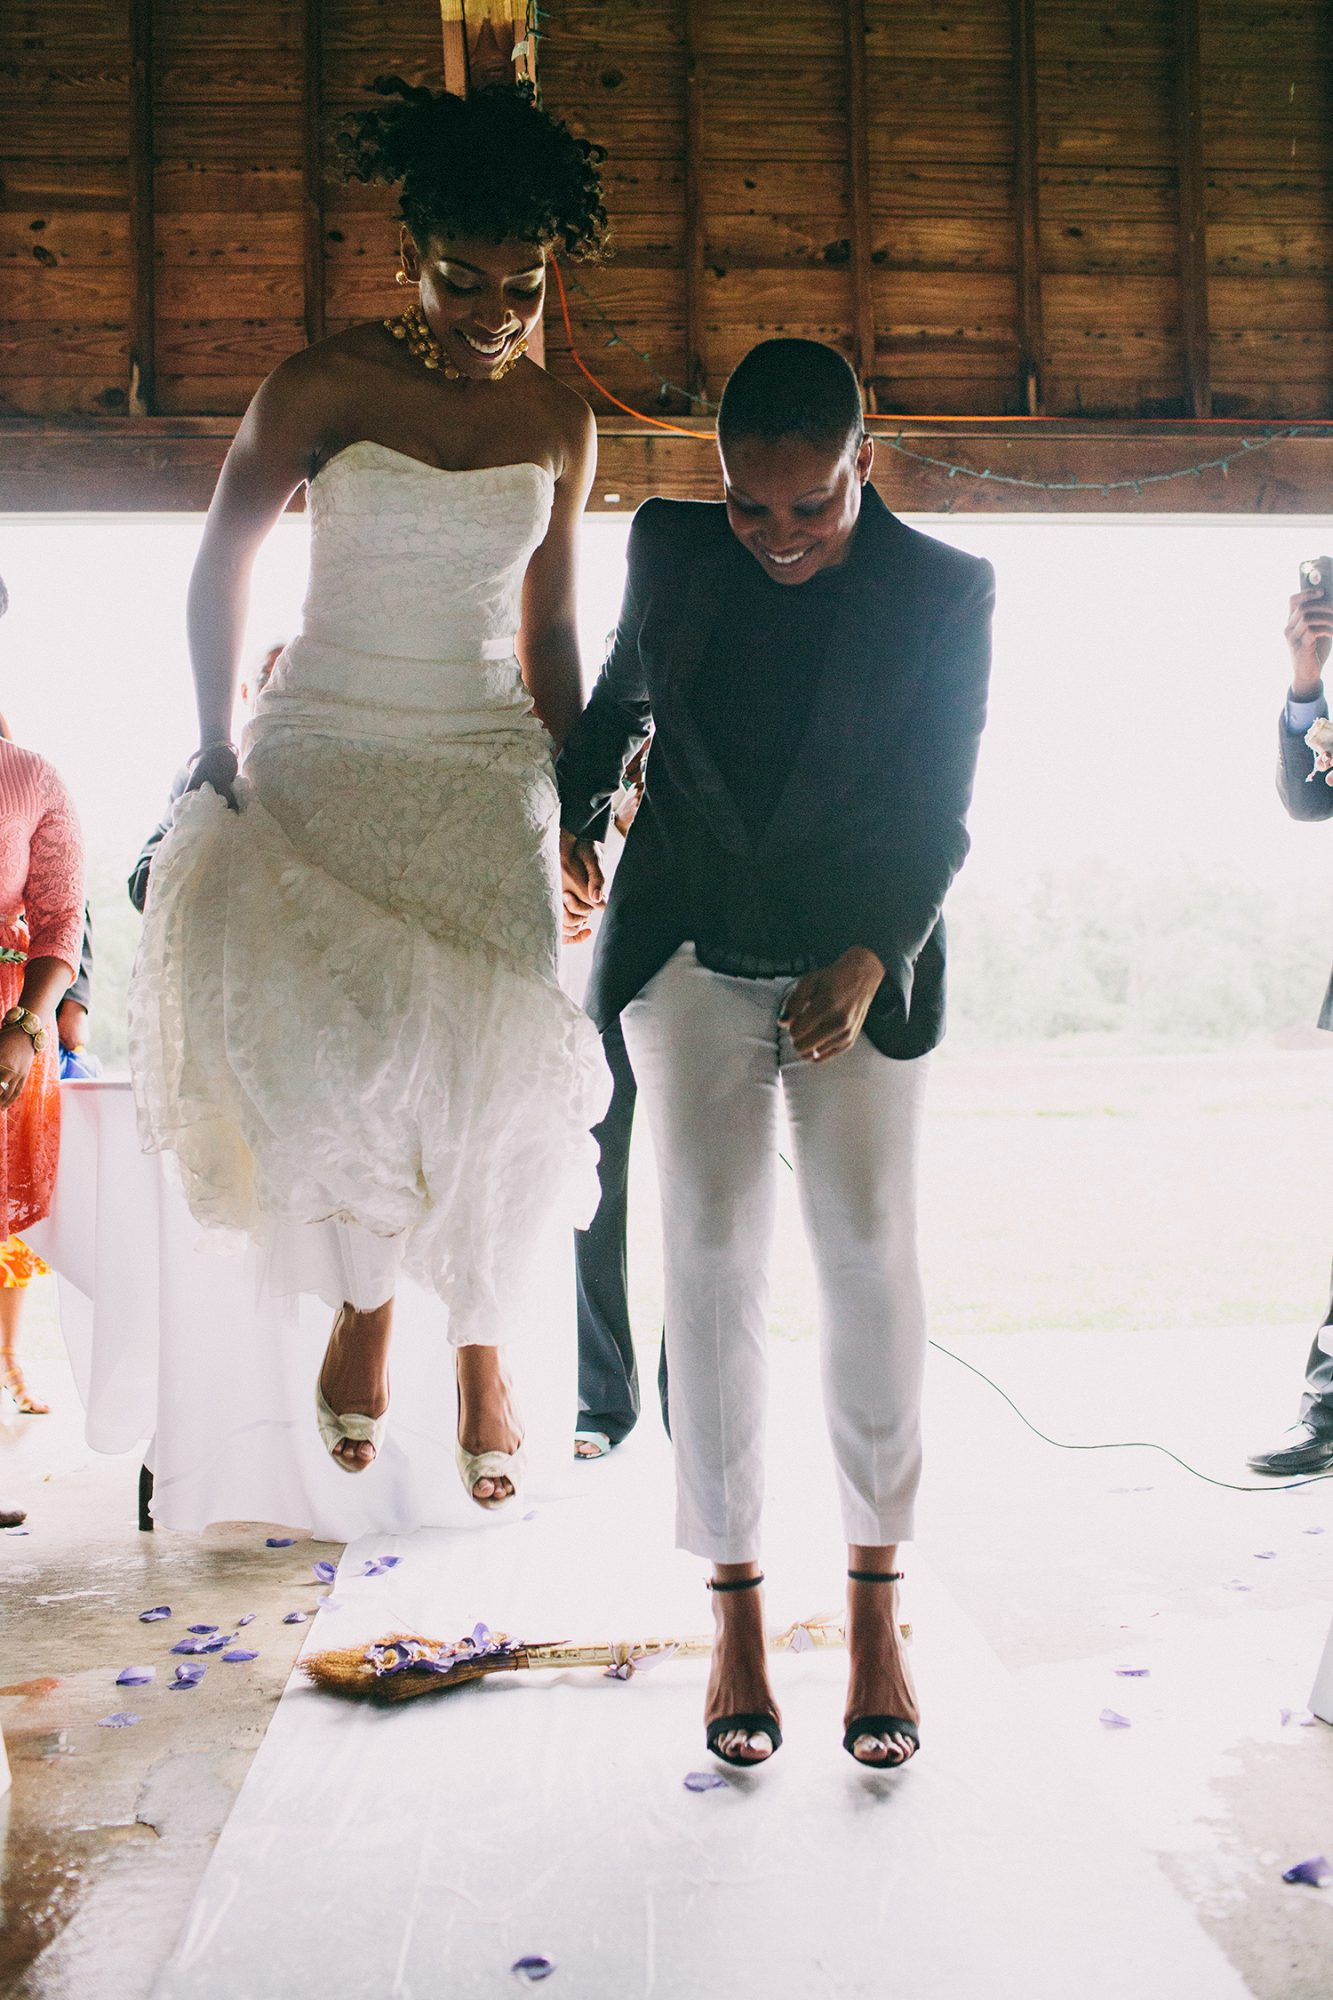 Another example of incorporating customs? Jumping the broom, like these joyful brides did.